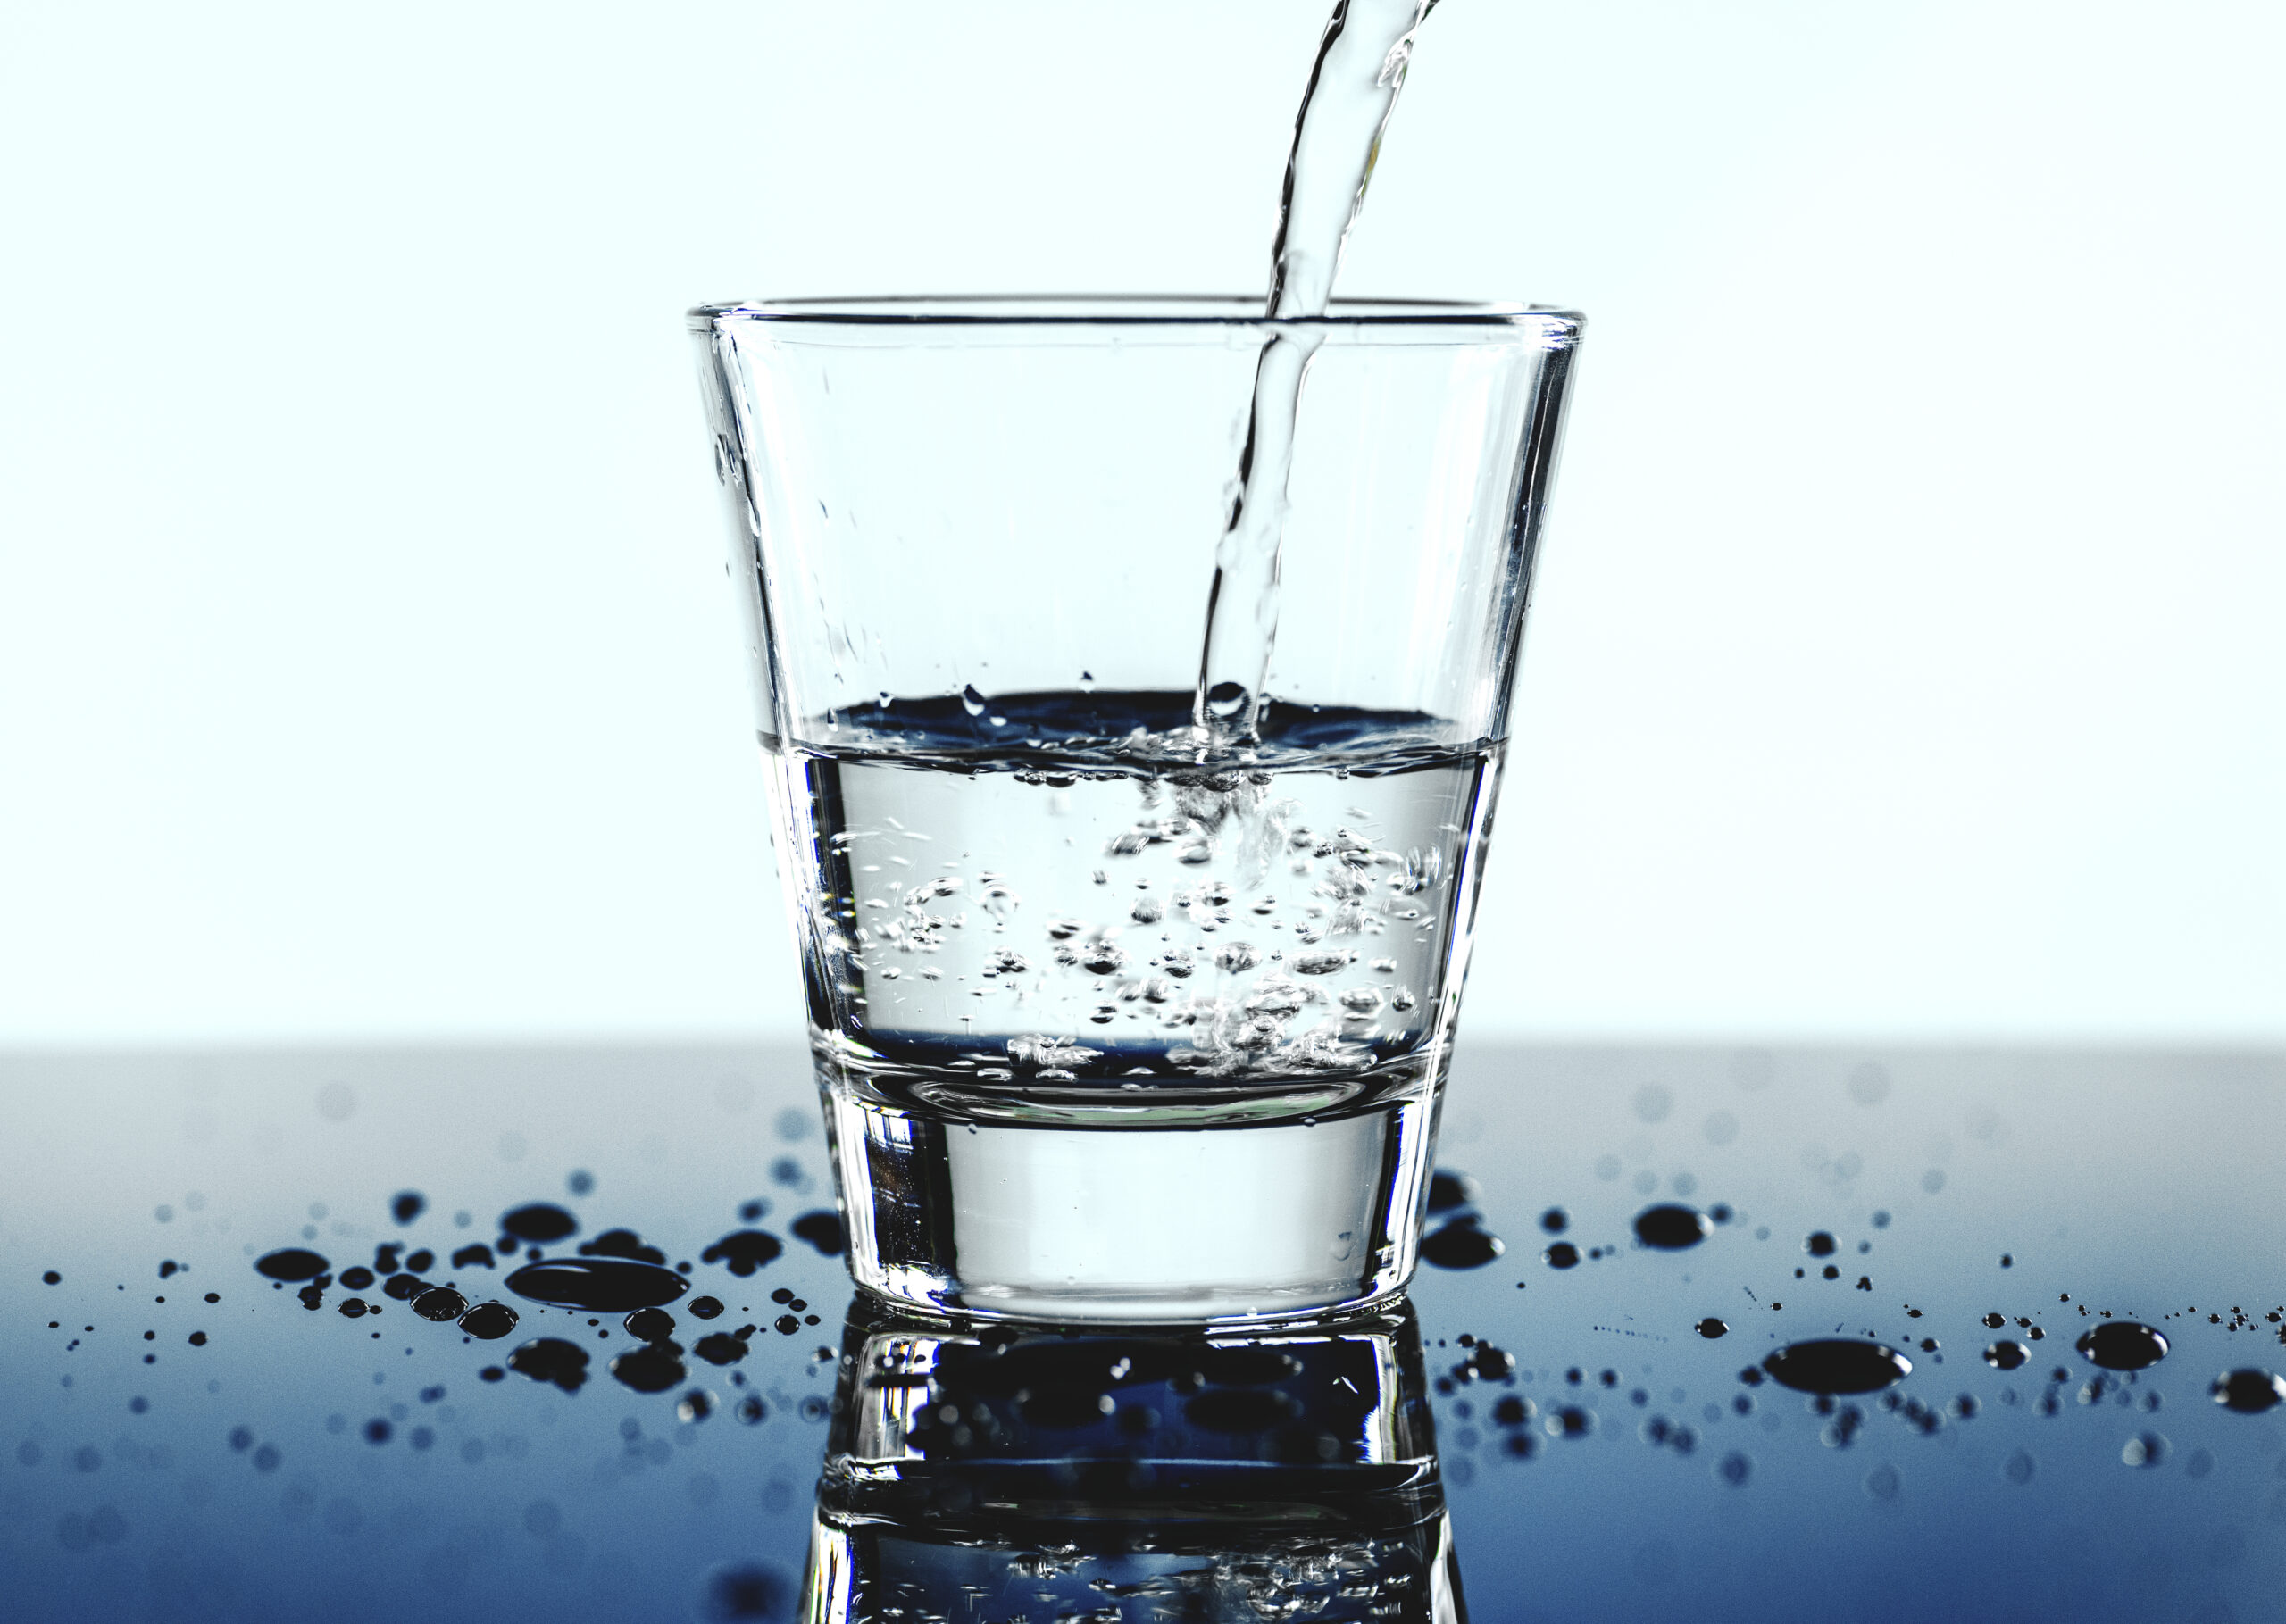 a glass of water with blue background